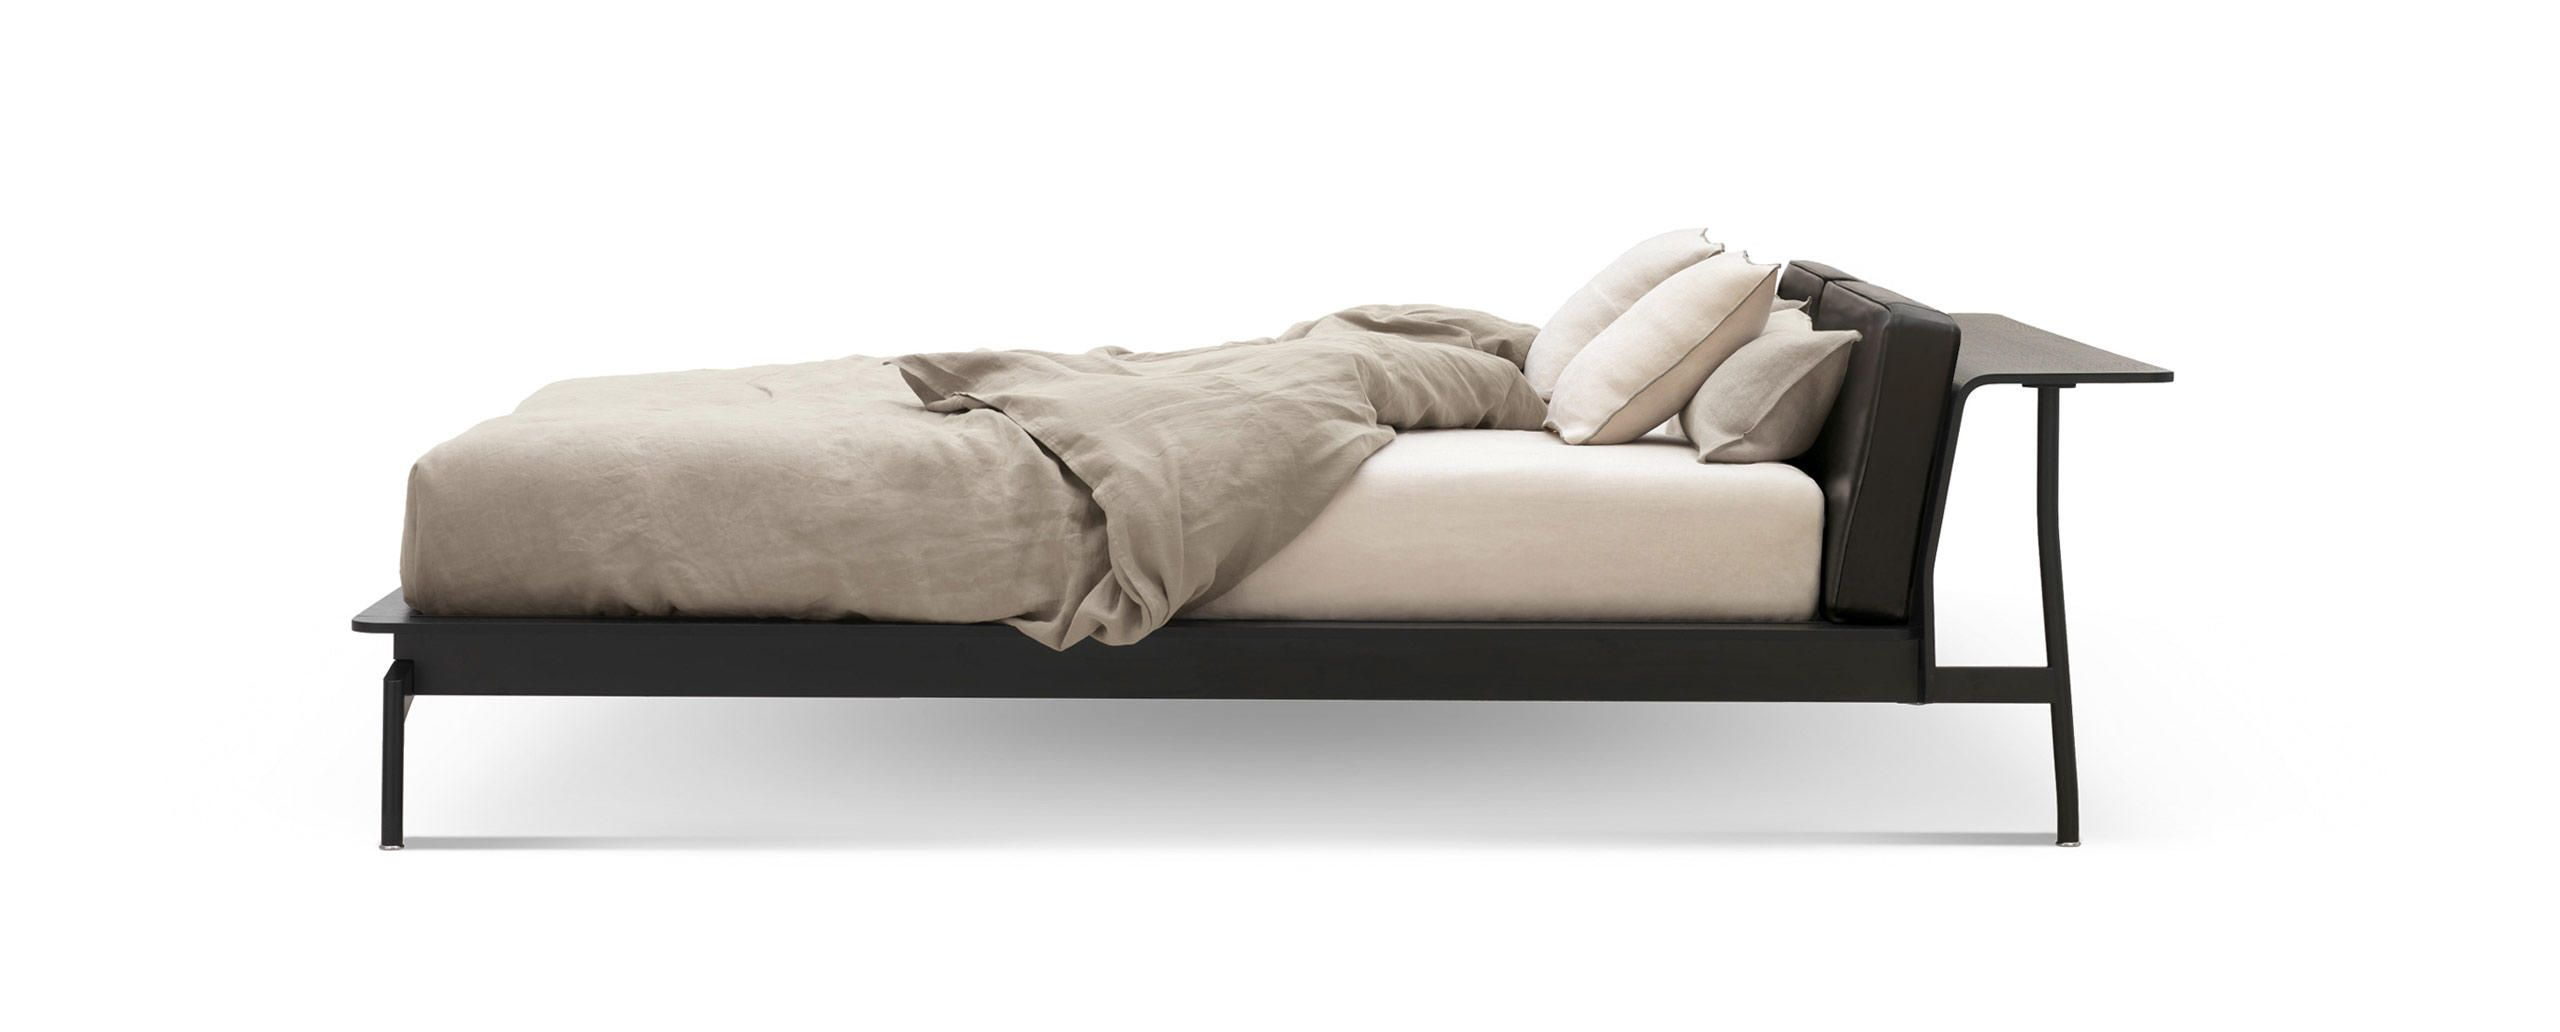 L41 Sled Bed By Rodolfo Dordoni Cassina With Images Bed